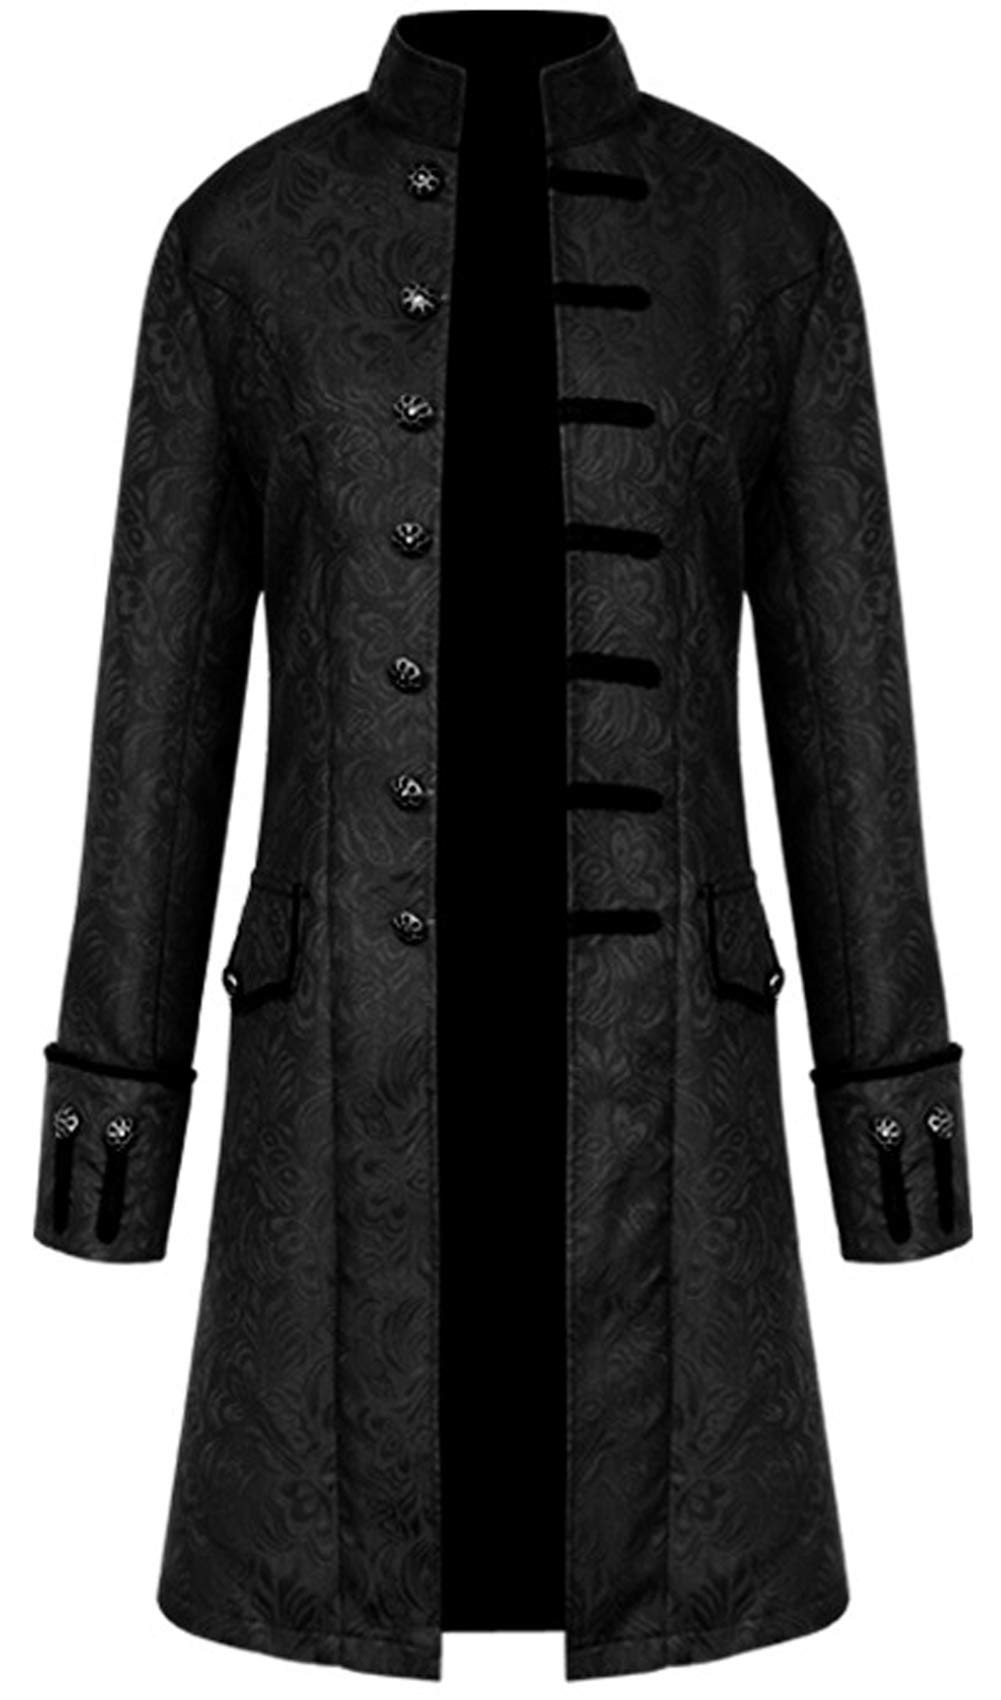 JOKHOO Men's Steampunk Tailcoat Jacket Gothic Victorian Frock Coat Tuxedo Halloween Costume (Black, 3XL) by JOKHOO